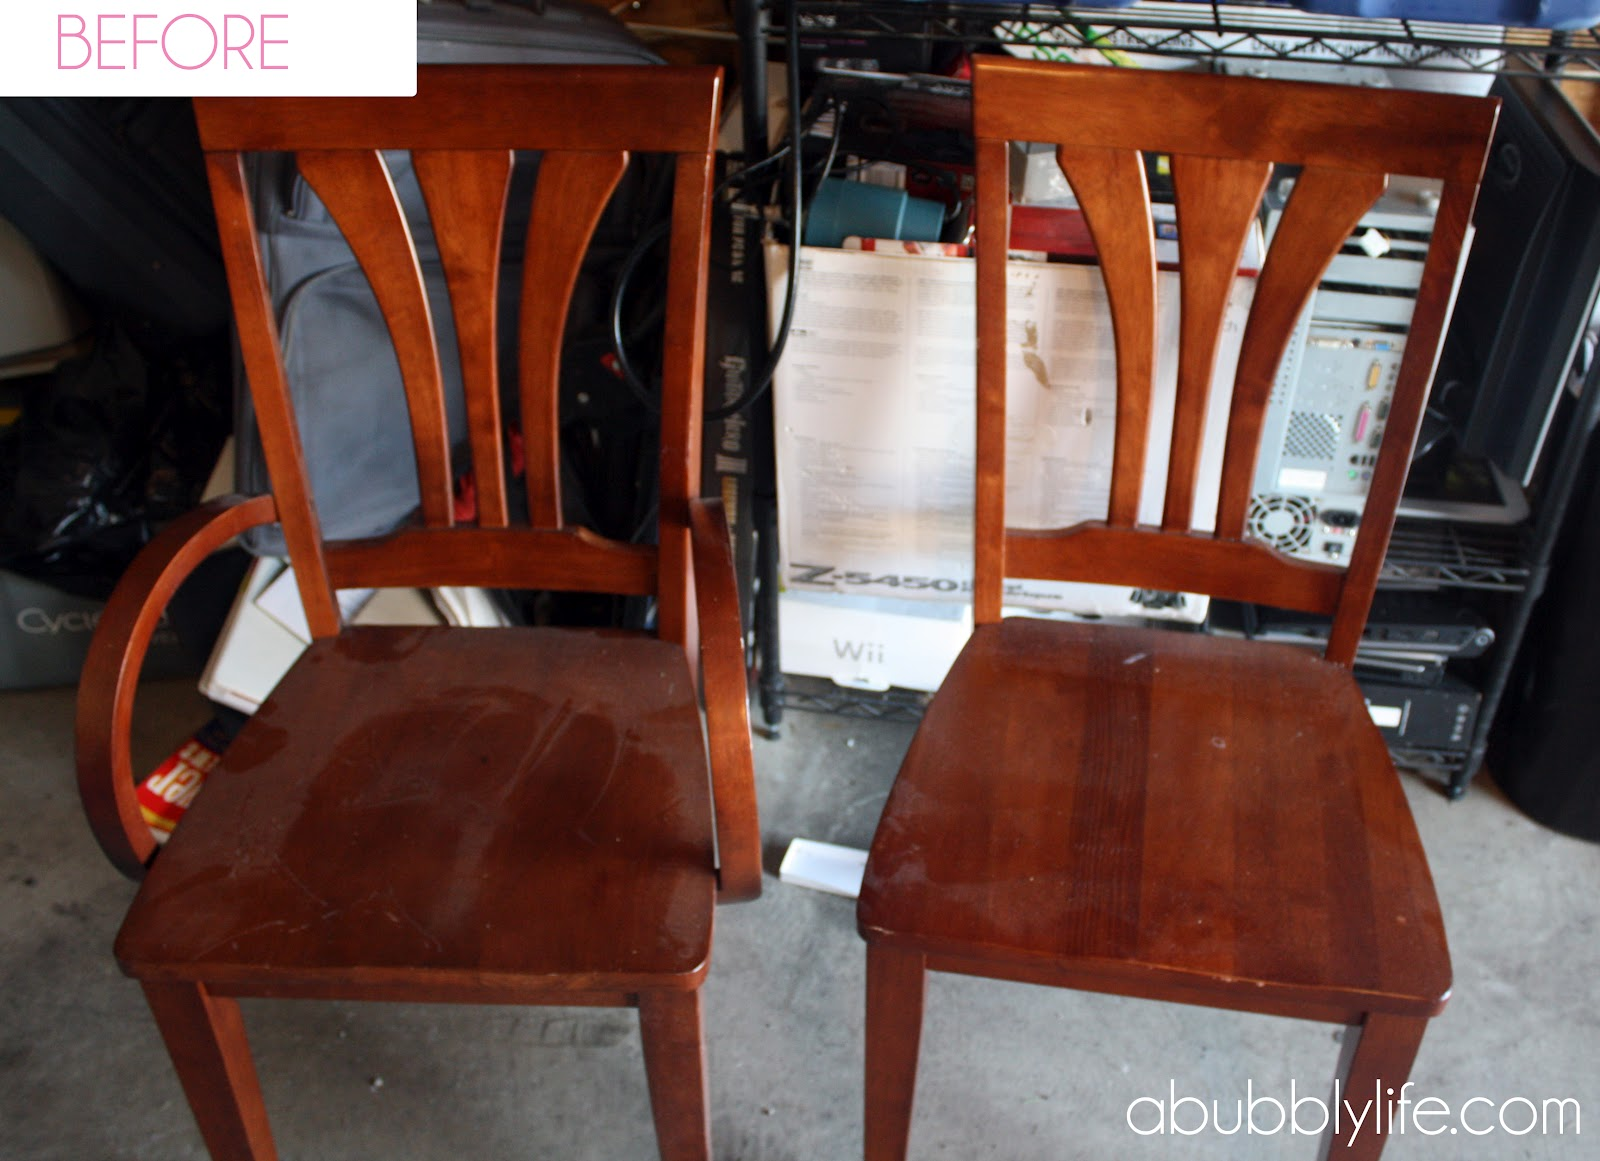 A Bubbly Life How To Paint A Dining Room Table Chairs Makeover Reveal